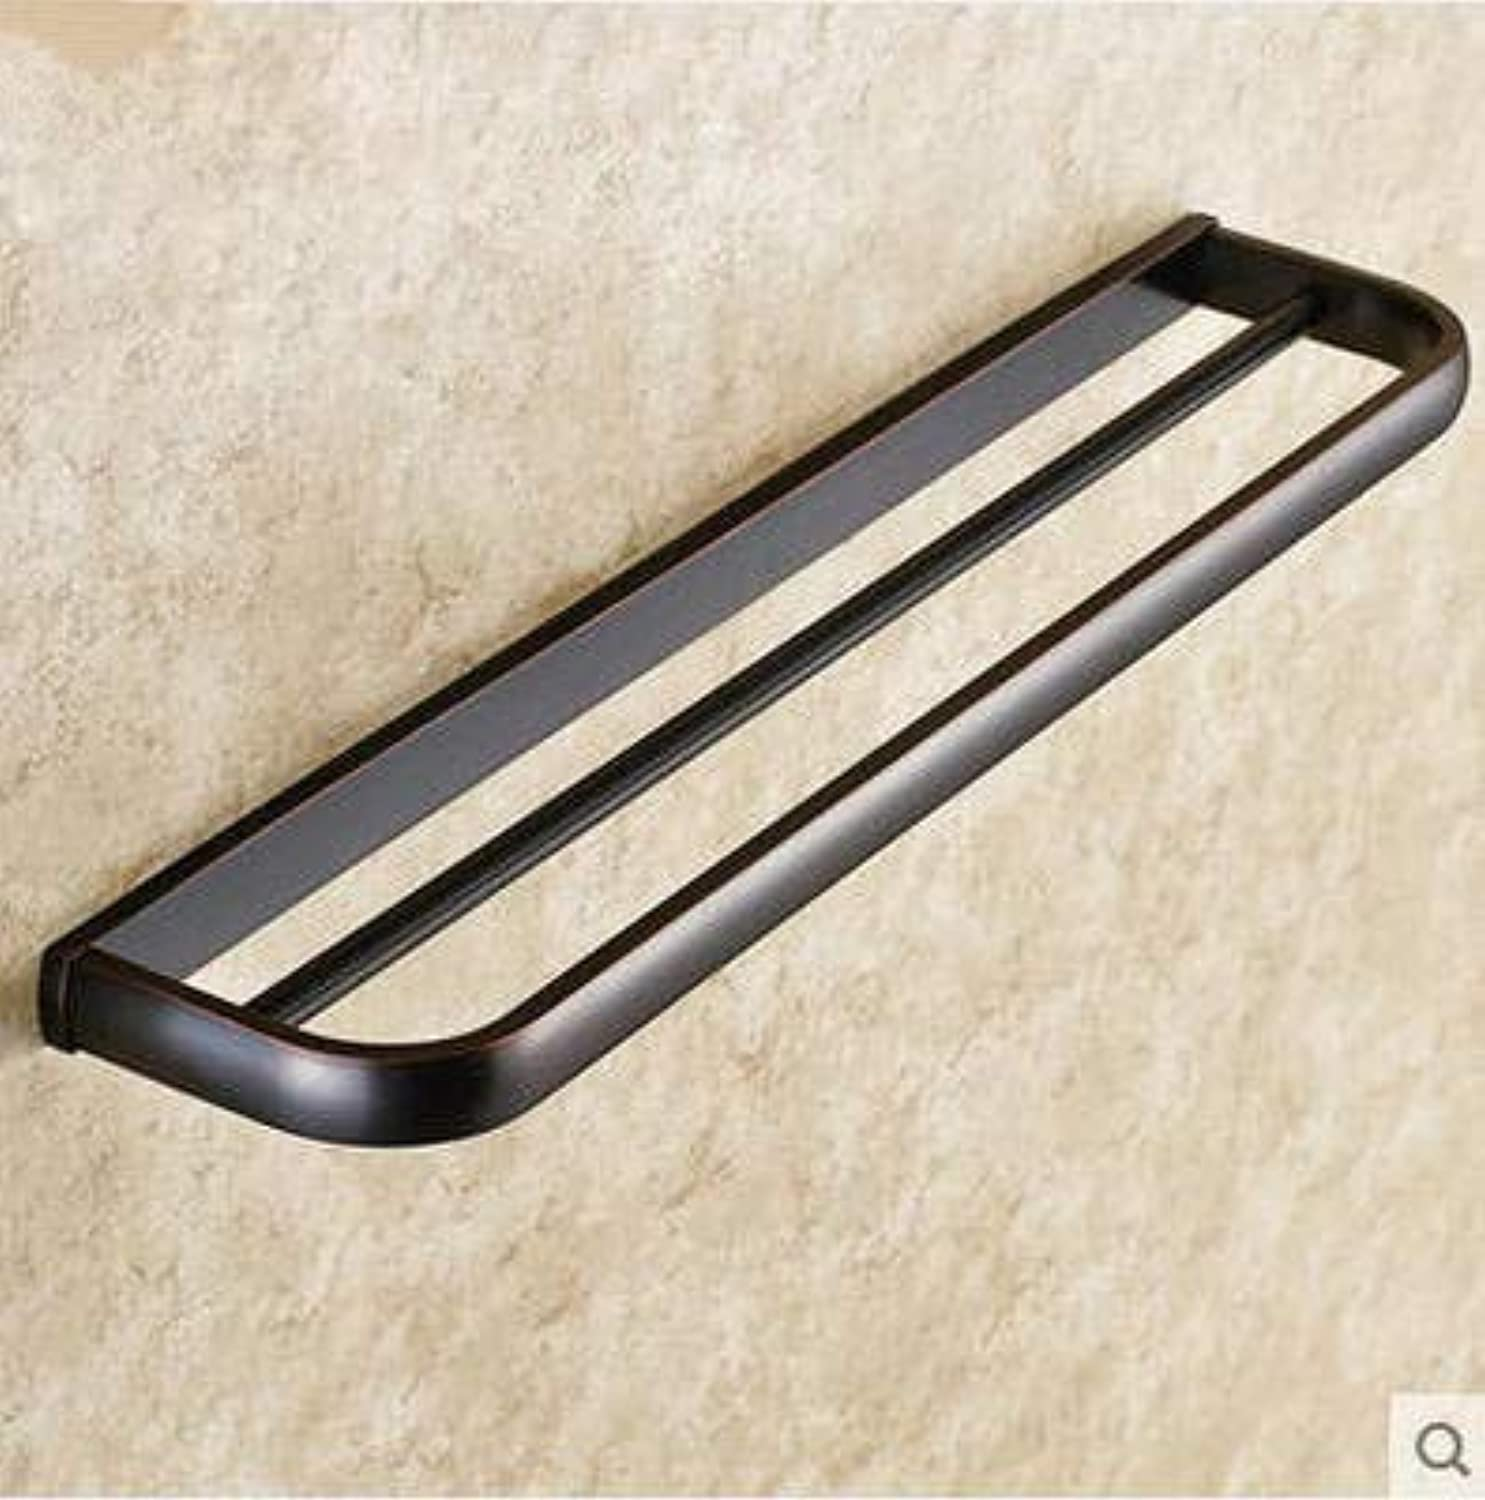 Bathroom Sink Basin Lever Mixer Tap Bath Towel Rack Retro Bronze Black Bronze Bath Towel Rack Simple Black Bronze Bathroom Pendant Bathroom Bath Towel Rack